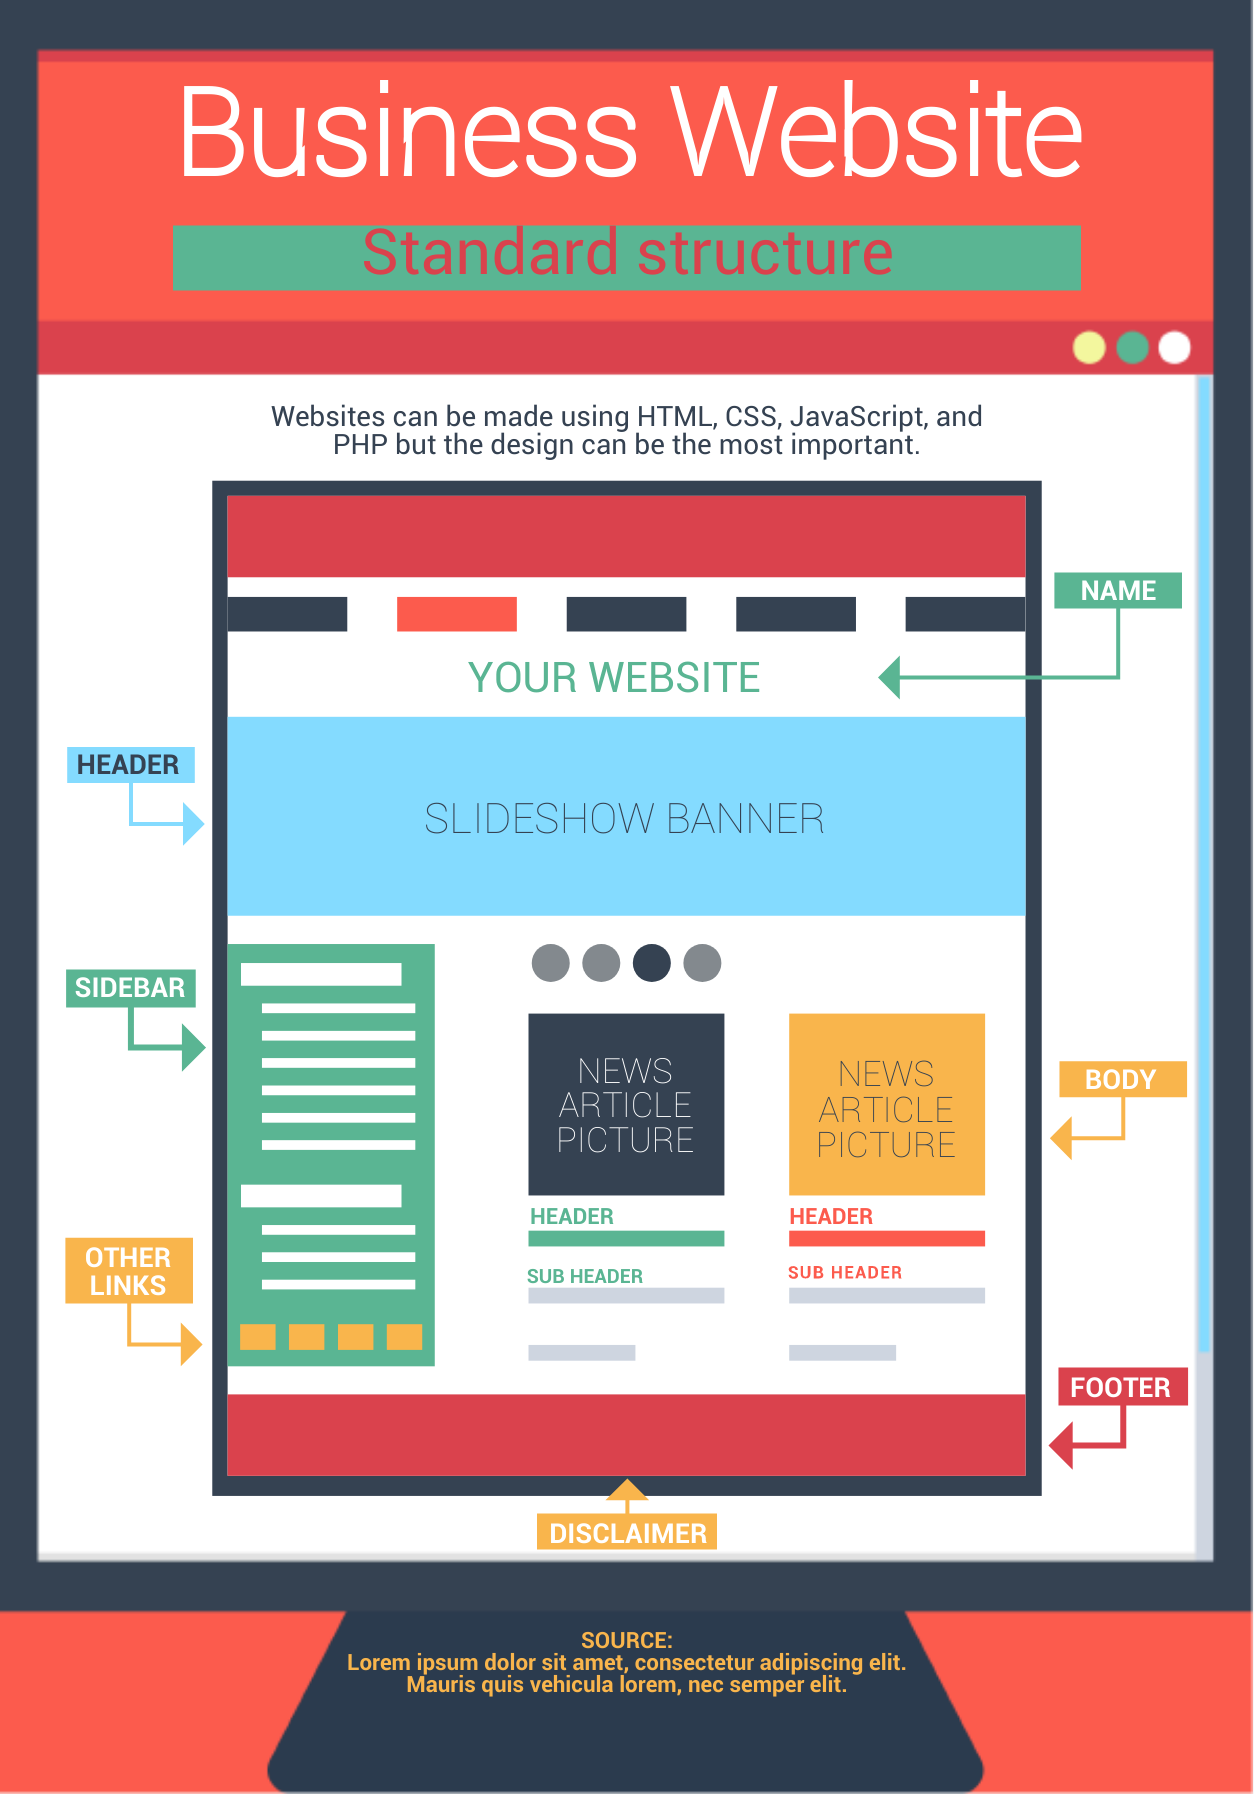 Business website marketing infographic template